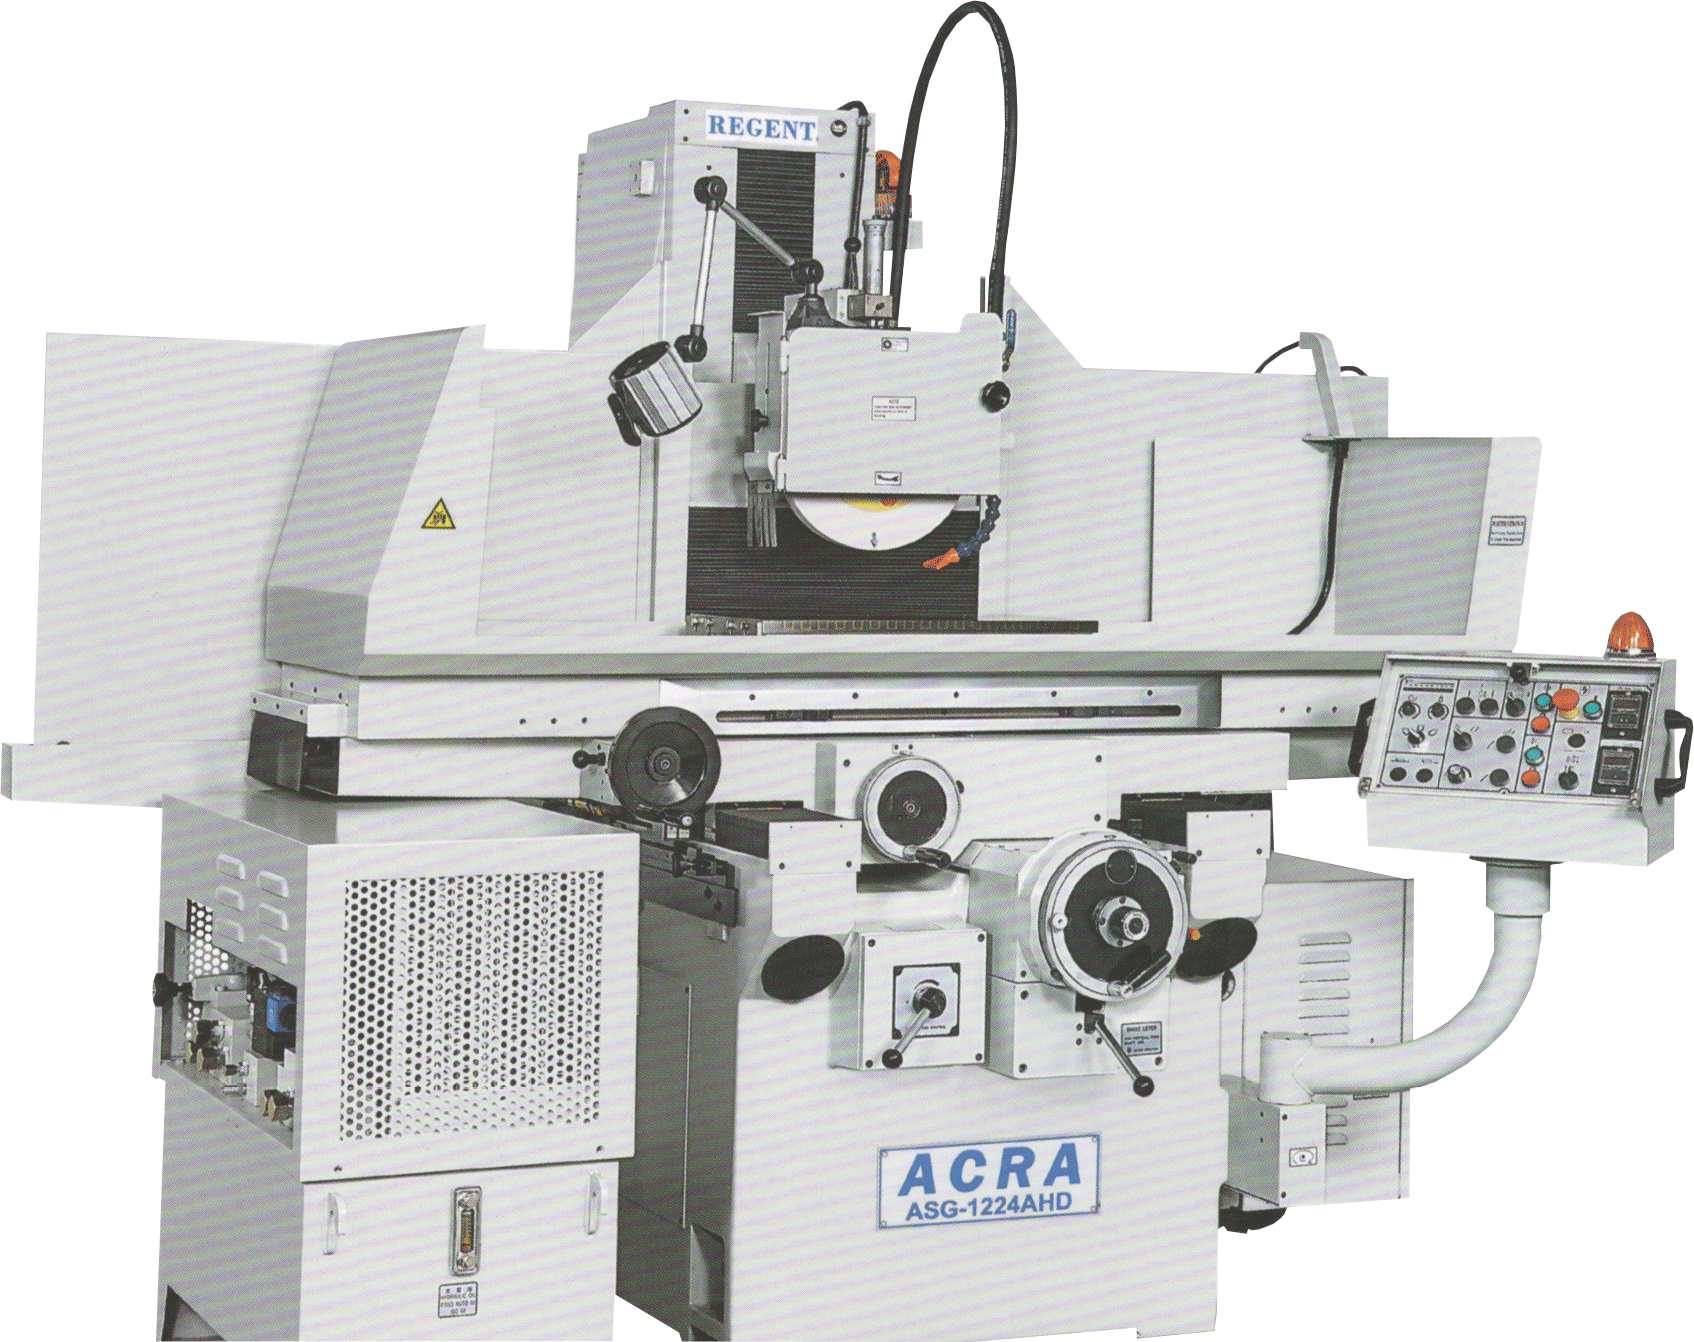 "12"" X 24"" ACRA MODEL 1224AHD AUTOMATIC 3 AXIS HIGH PRECISION SURFACE GRINDER"